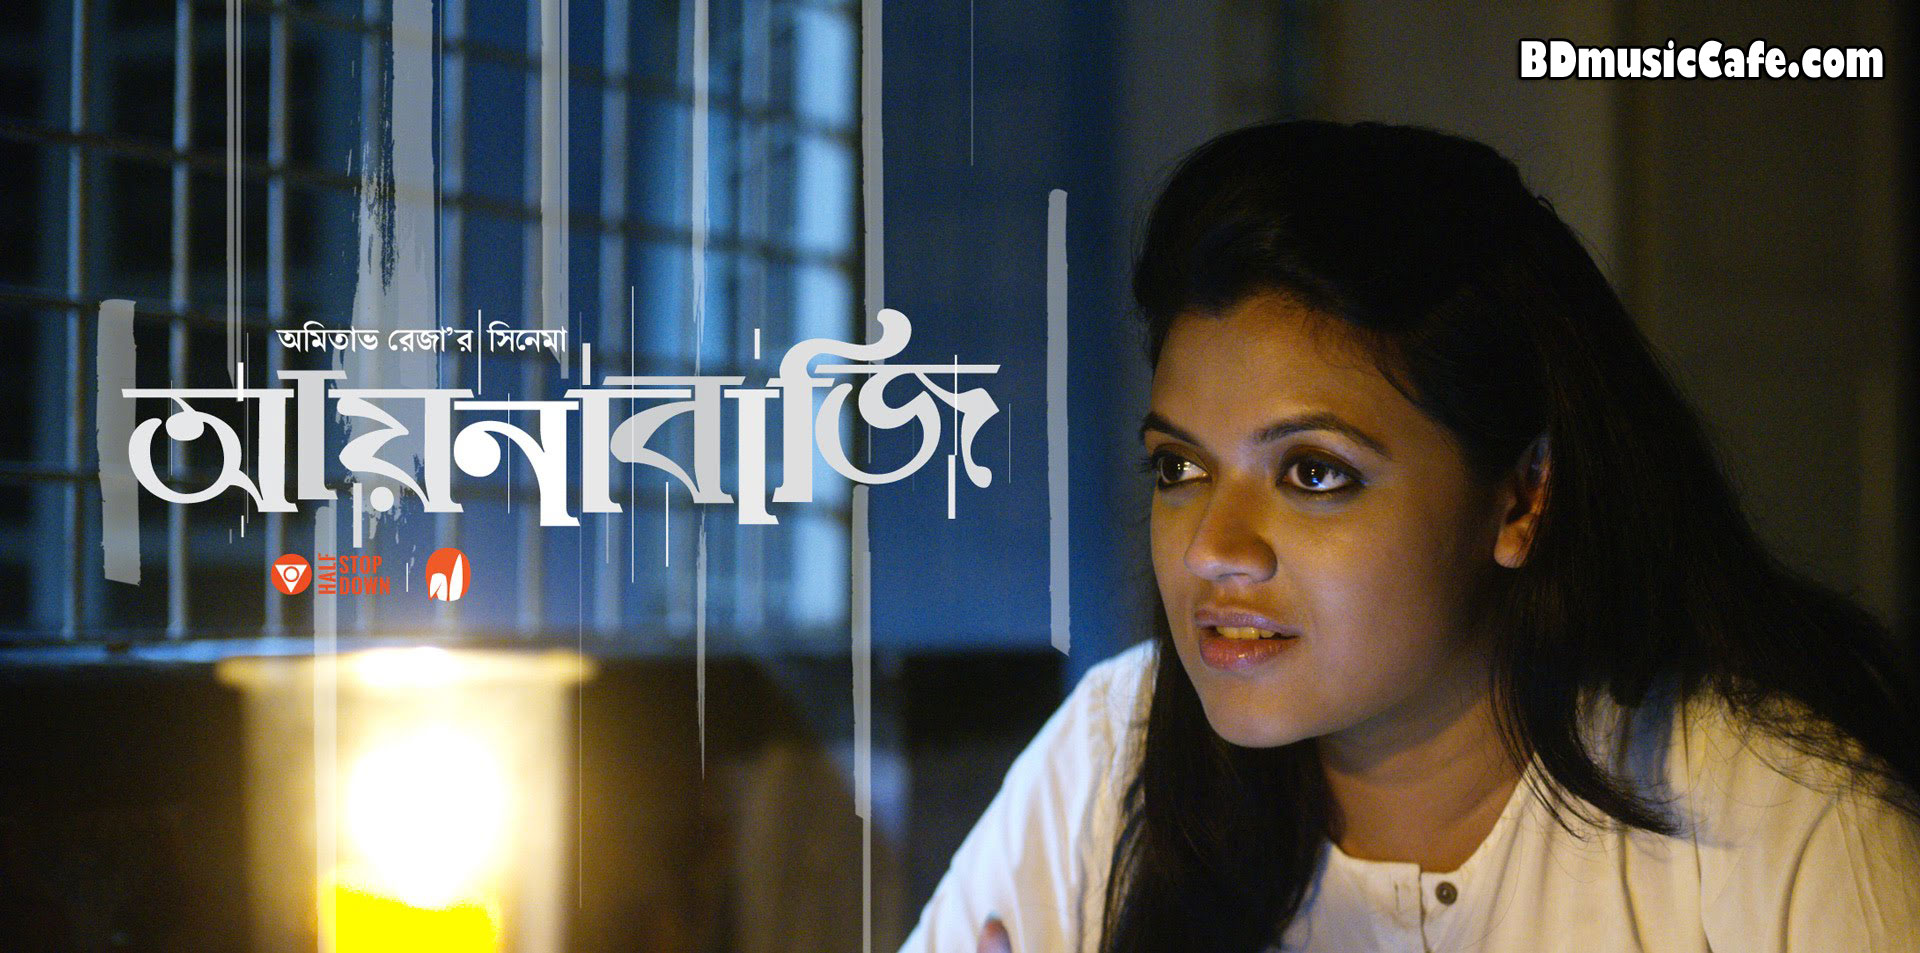 ... , Aynabaji Bangla Movie 2016 Teaser, Aynabaji Bangla Movie